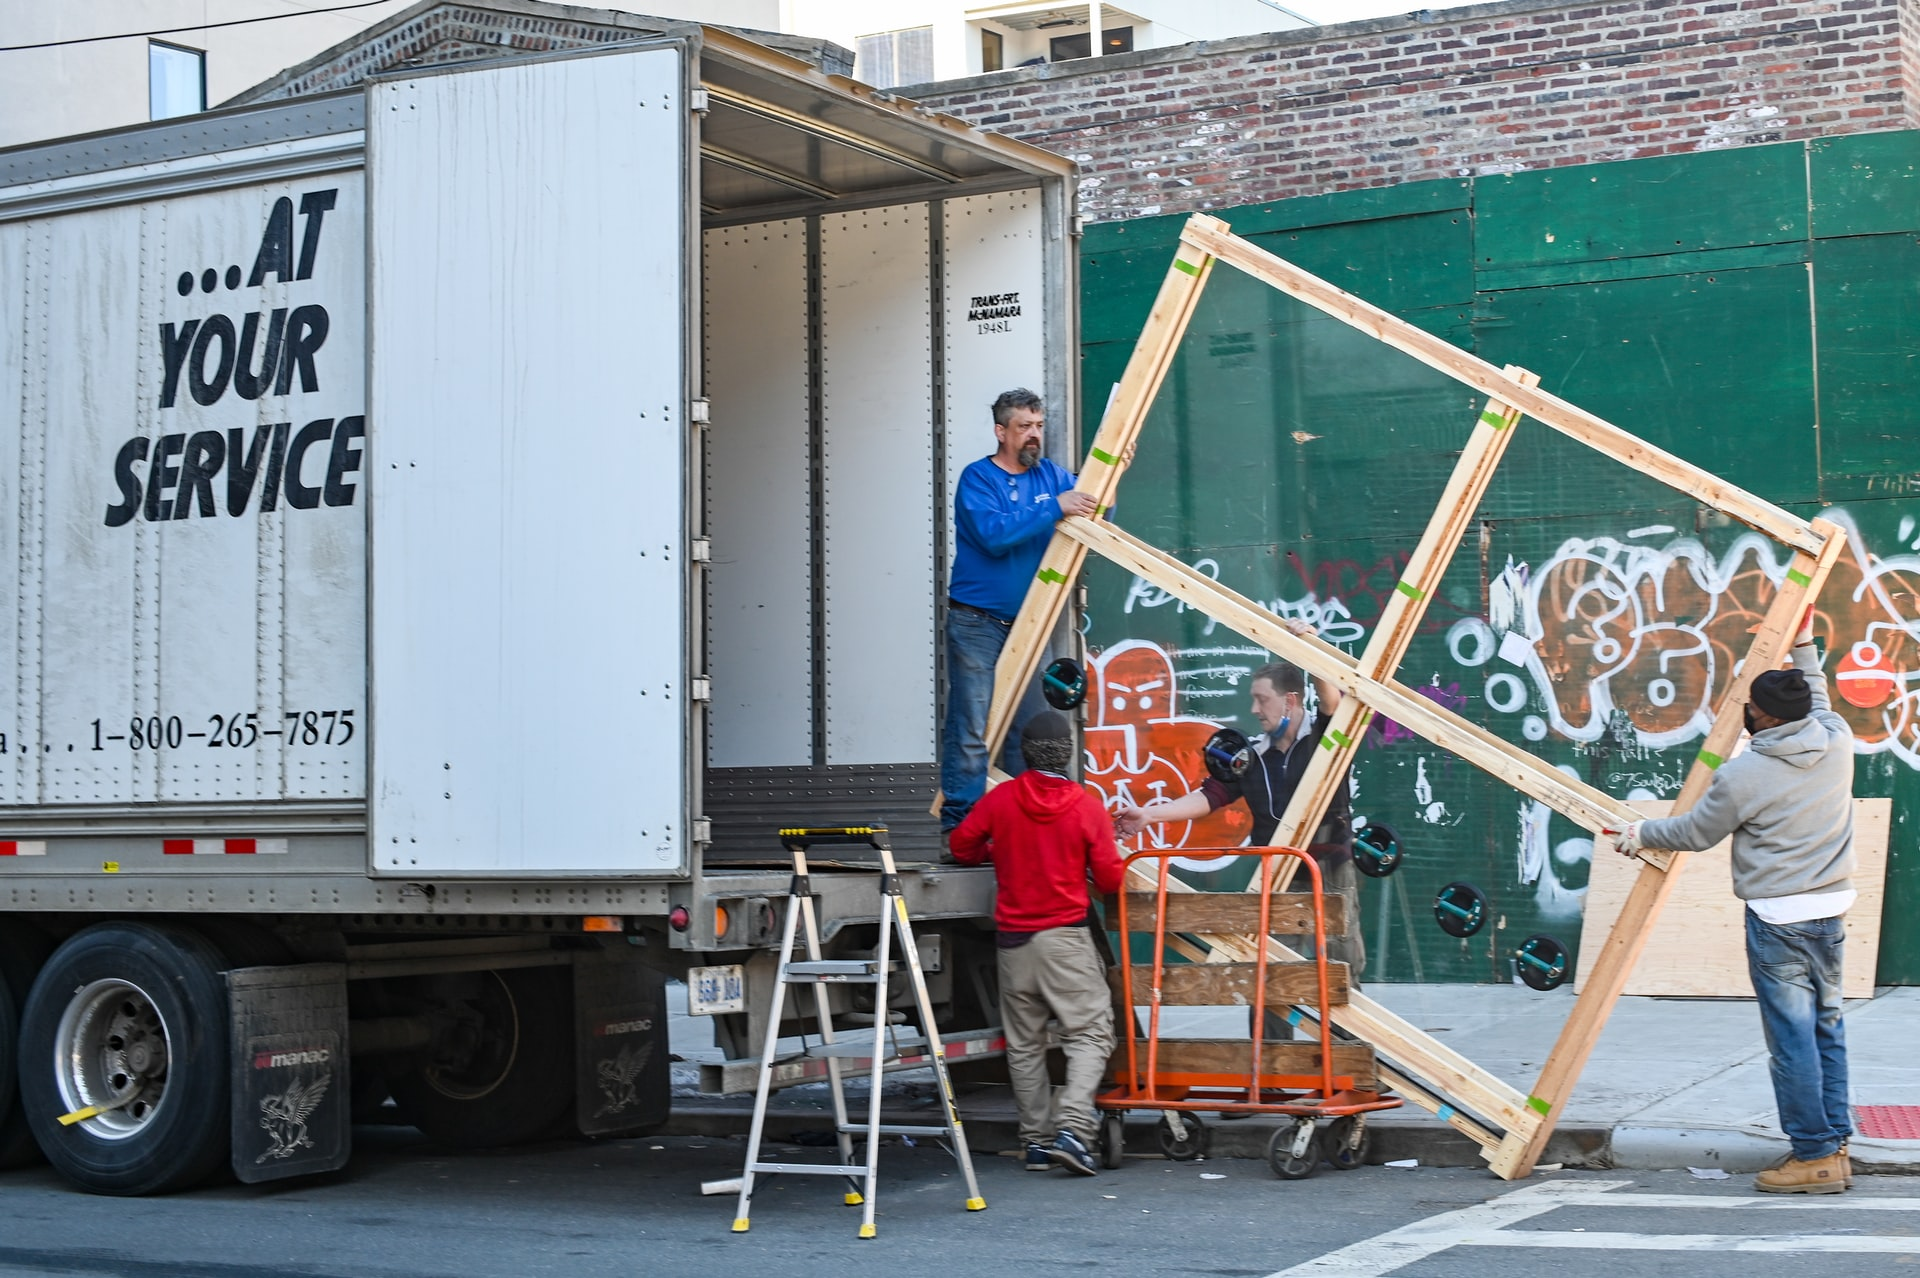 Movers loading the truck offer different types of moving services.